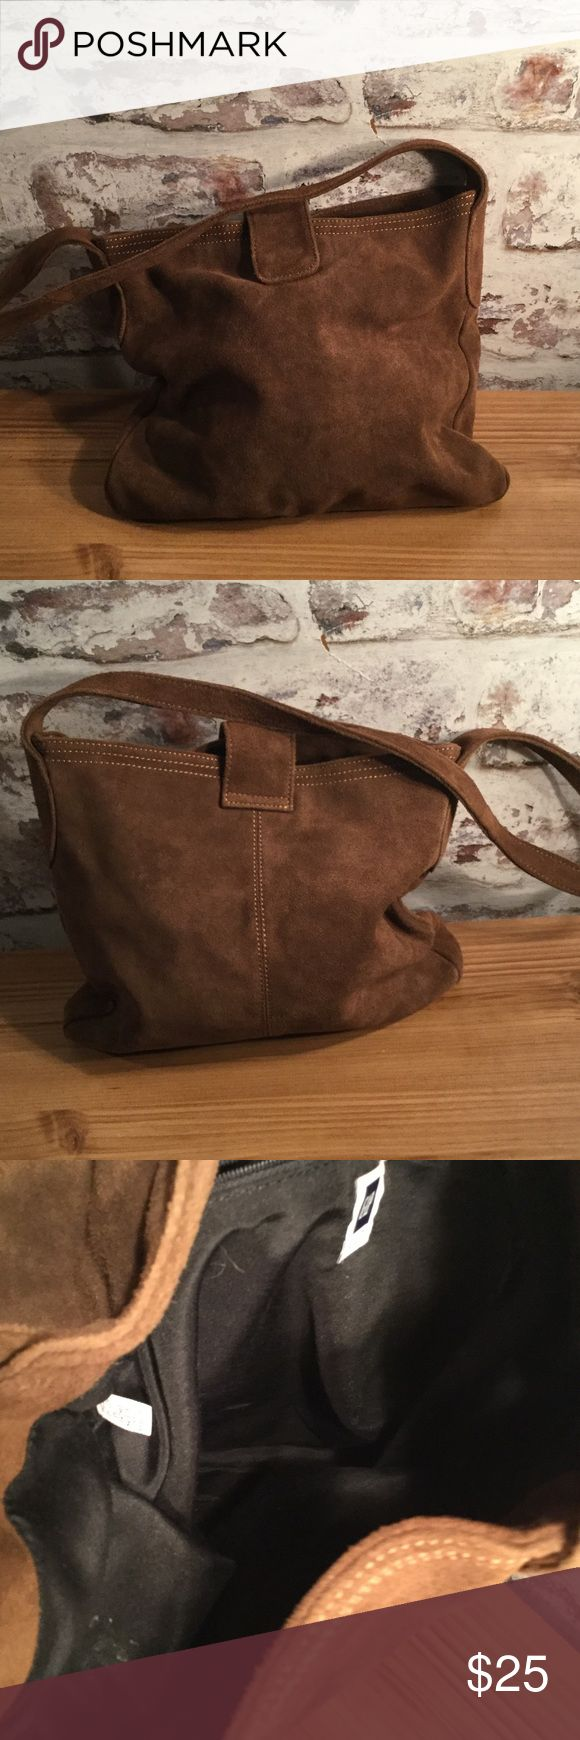 Suede sack bag from Gap🎈sale🎈 Suede sack bag from the Gap. Excellent condition GAP Bags Shoulder Bags